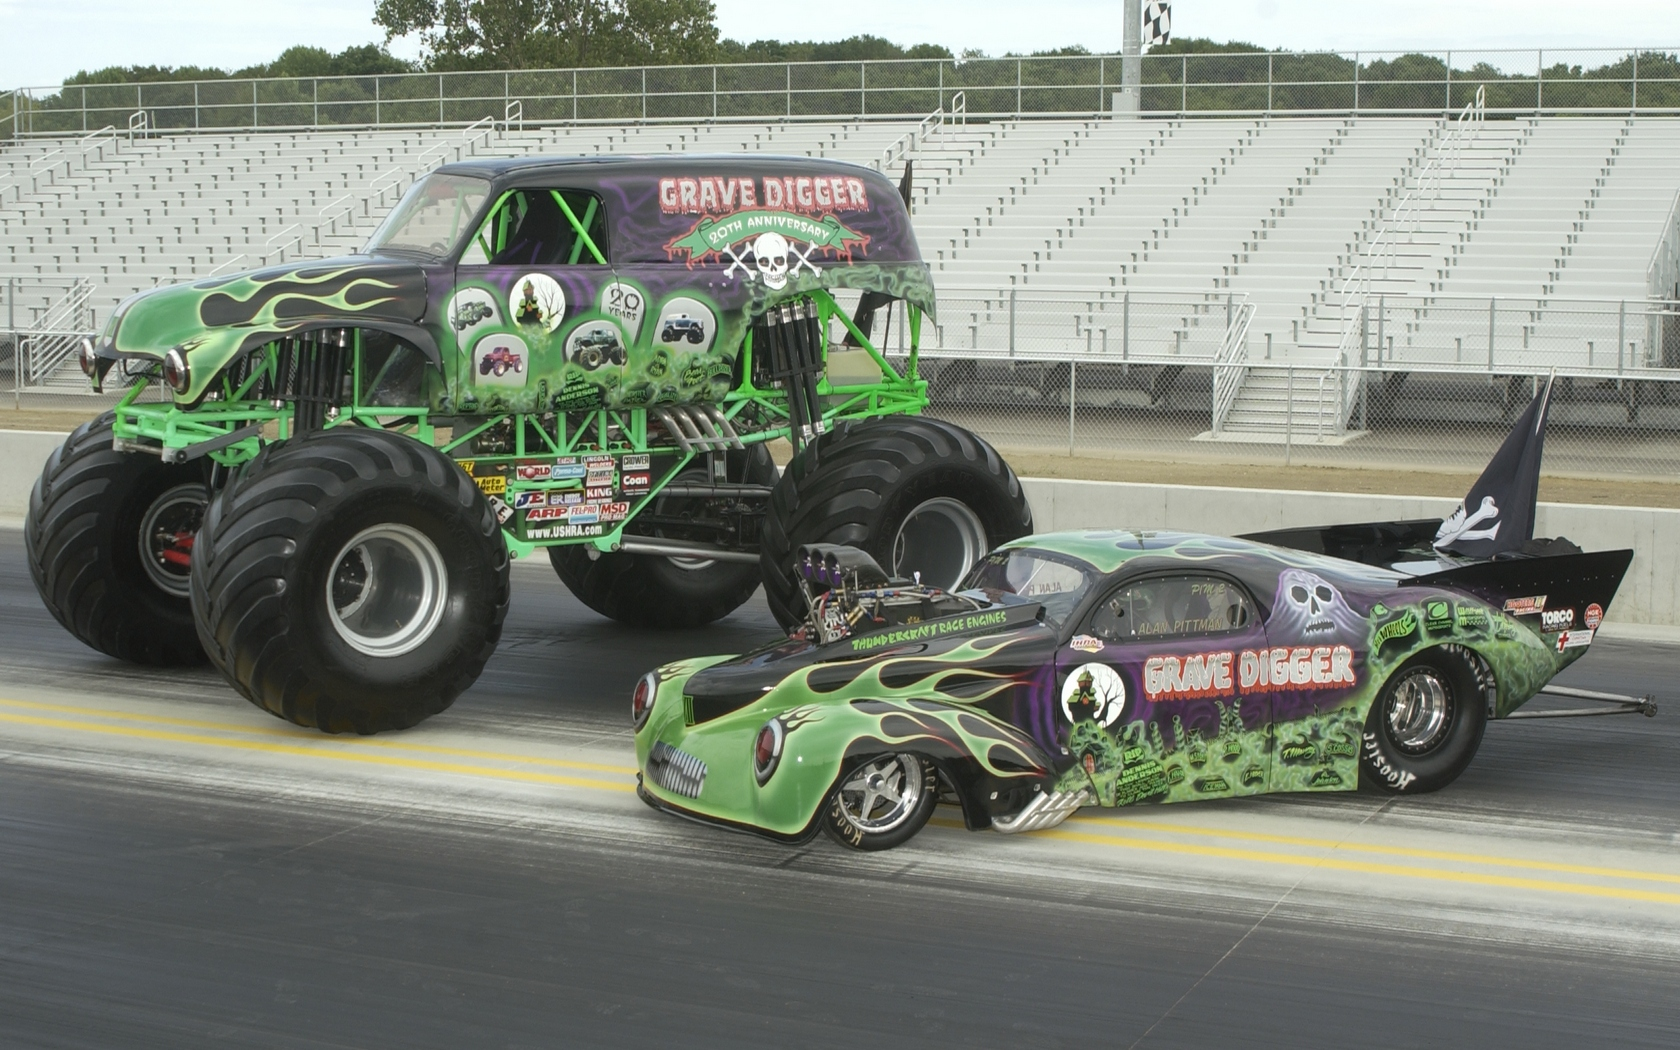 111 best grave digger monster truck images on pinterest monster